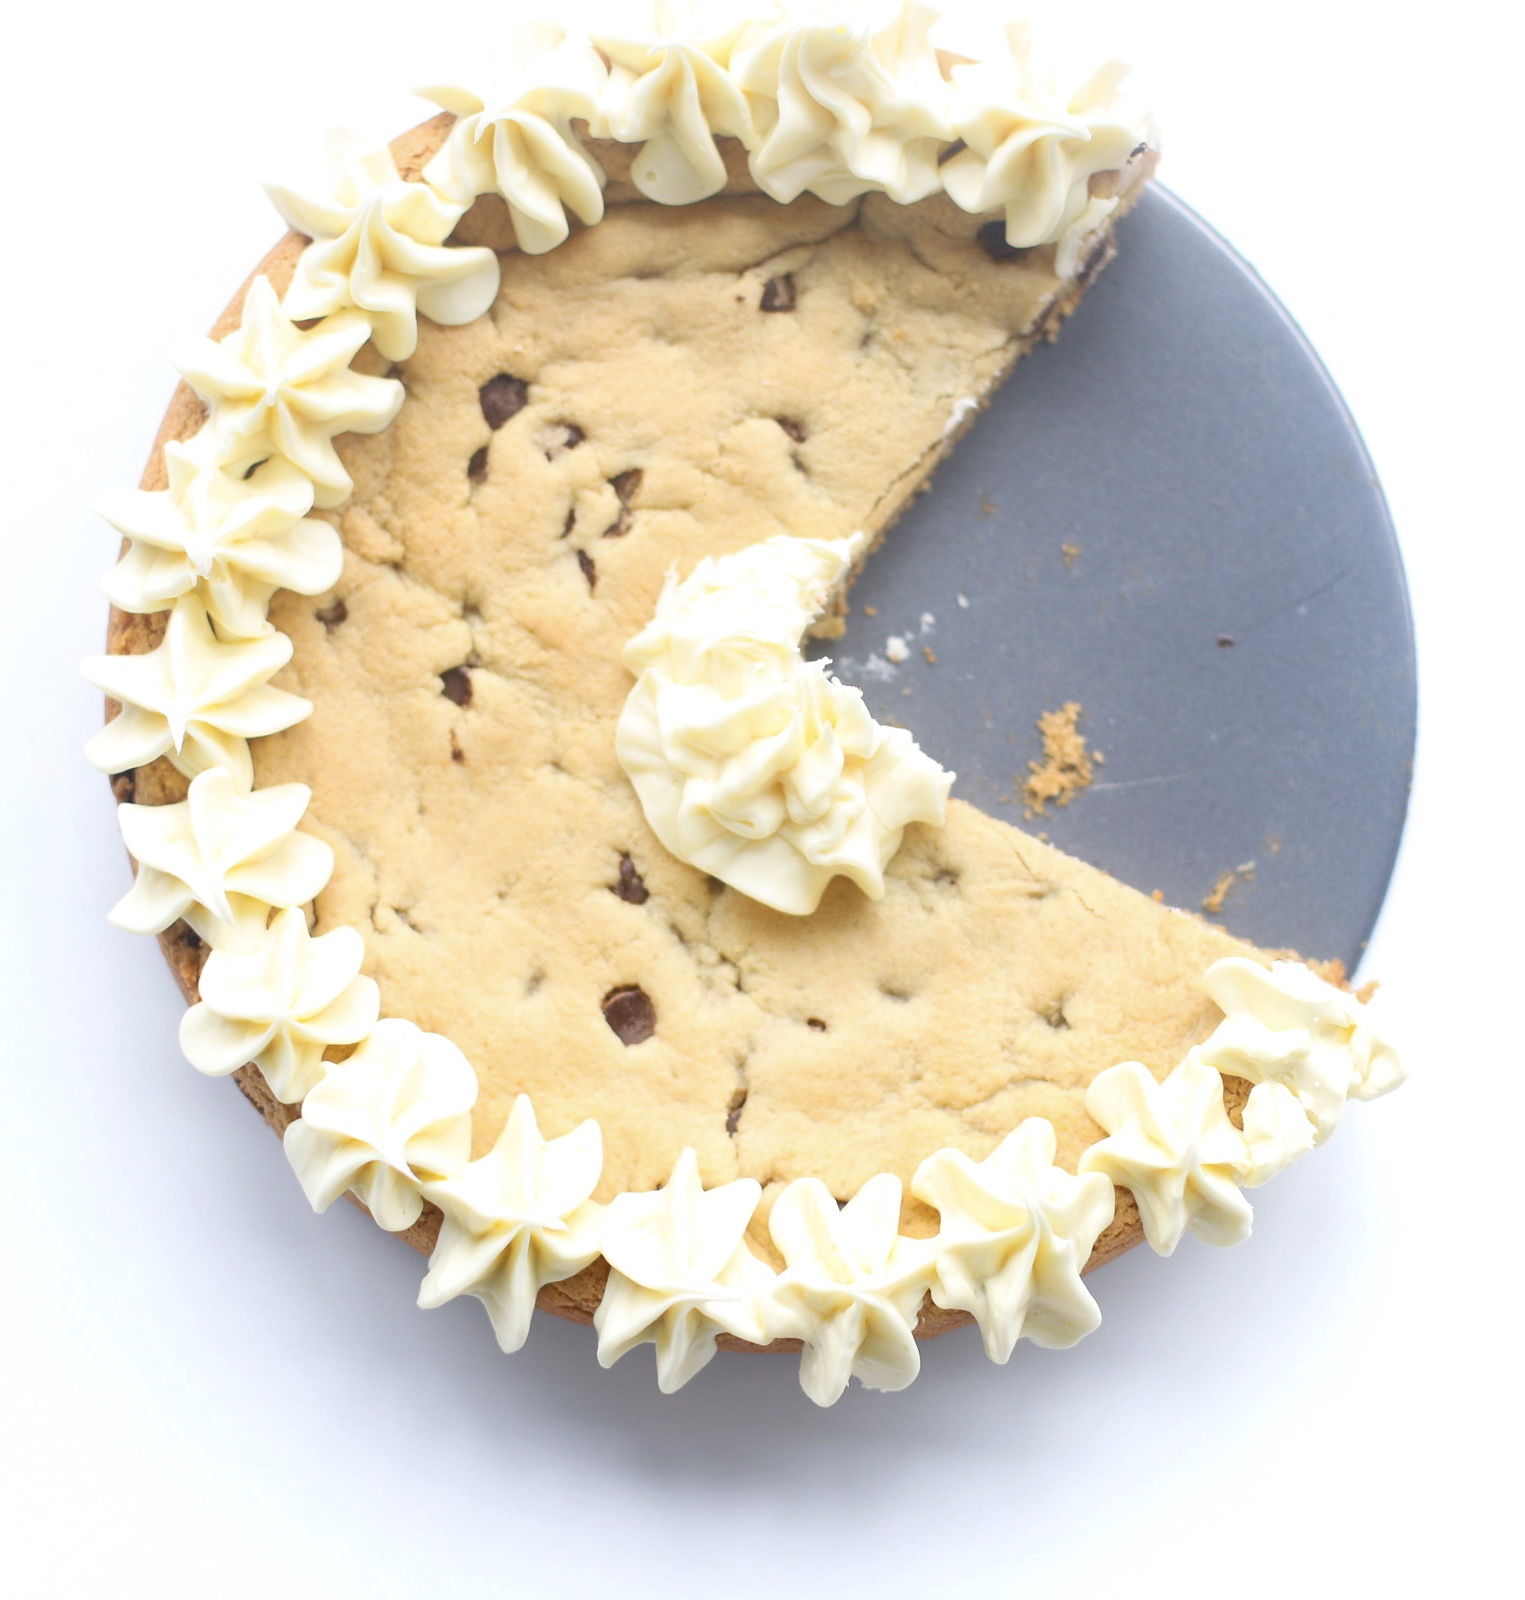 This incredible almond flour chocolate chip cookie cake is gluten free, and everything a giant chocolate chip cookie should be: chewy, sweet, with a hint of salt, loaded with rich chocolate chips, and totally obsession worthy. - Dairy Free - Marzipan - Kosher for Passover - Recipe | glitterinc.com | @glitterinc